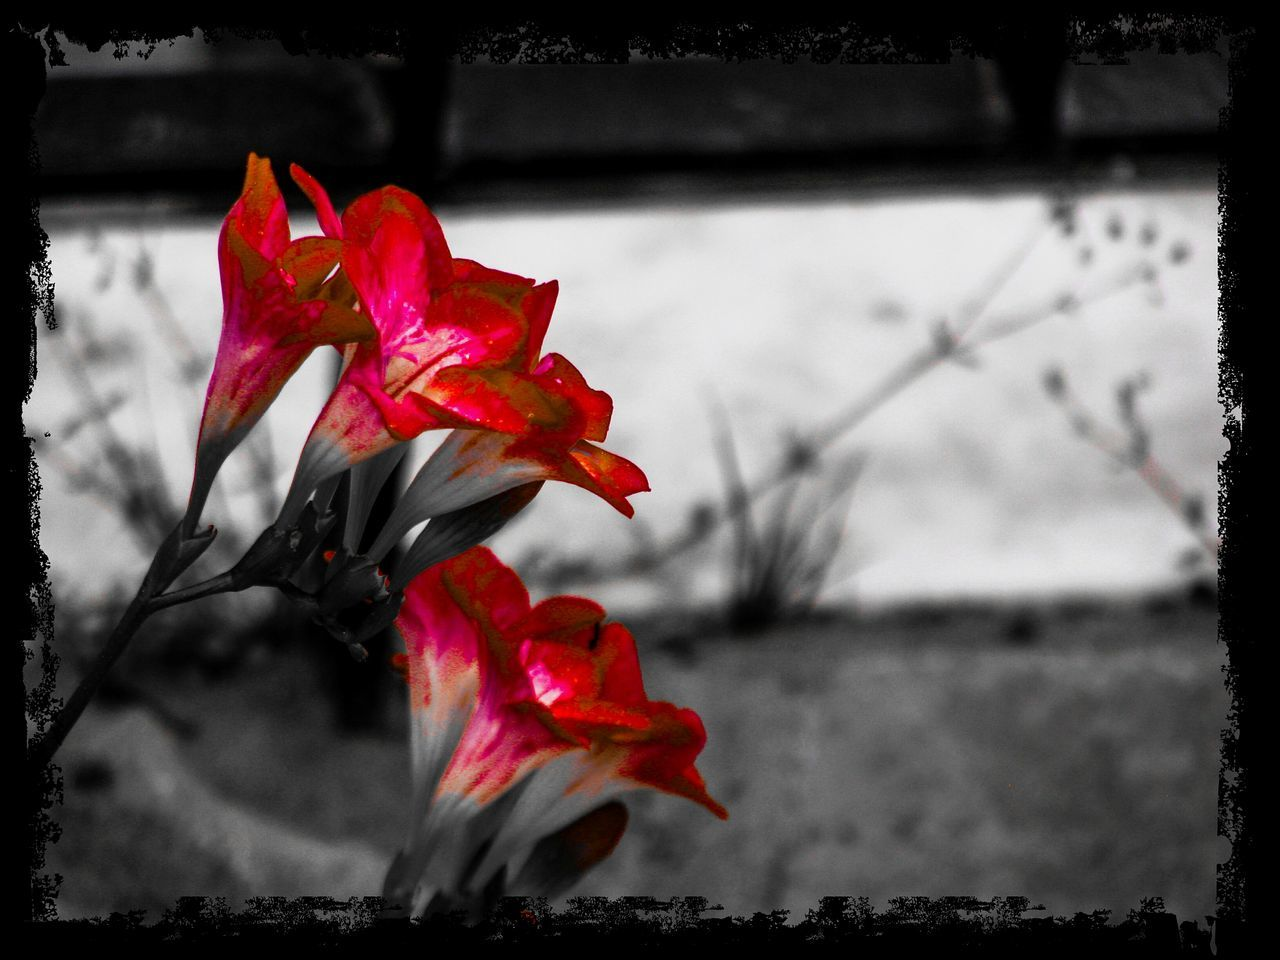 Red Flower Red Flowers Leaf Nature Beauty In Nature Fragility Flower Head Carmine Red Flower Flower Collection Flowers Black Background Backgrounds Garden Garden Photography Garden Flowers Break The Mold